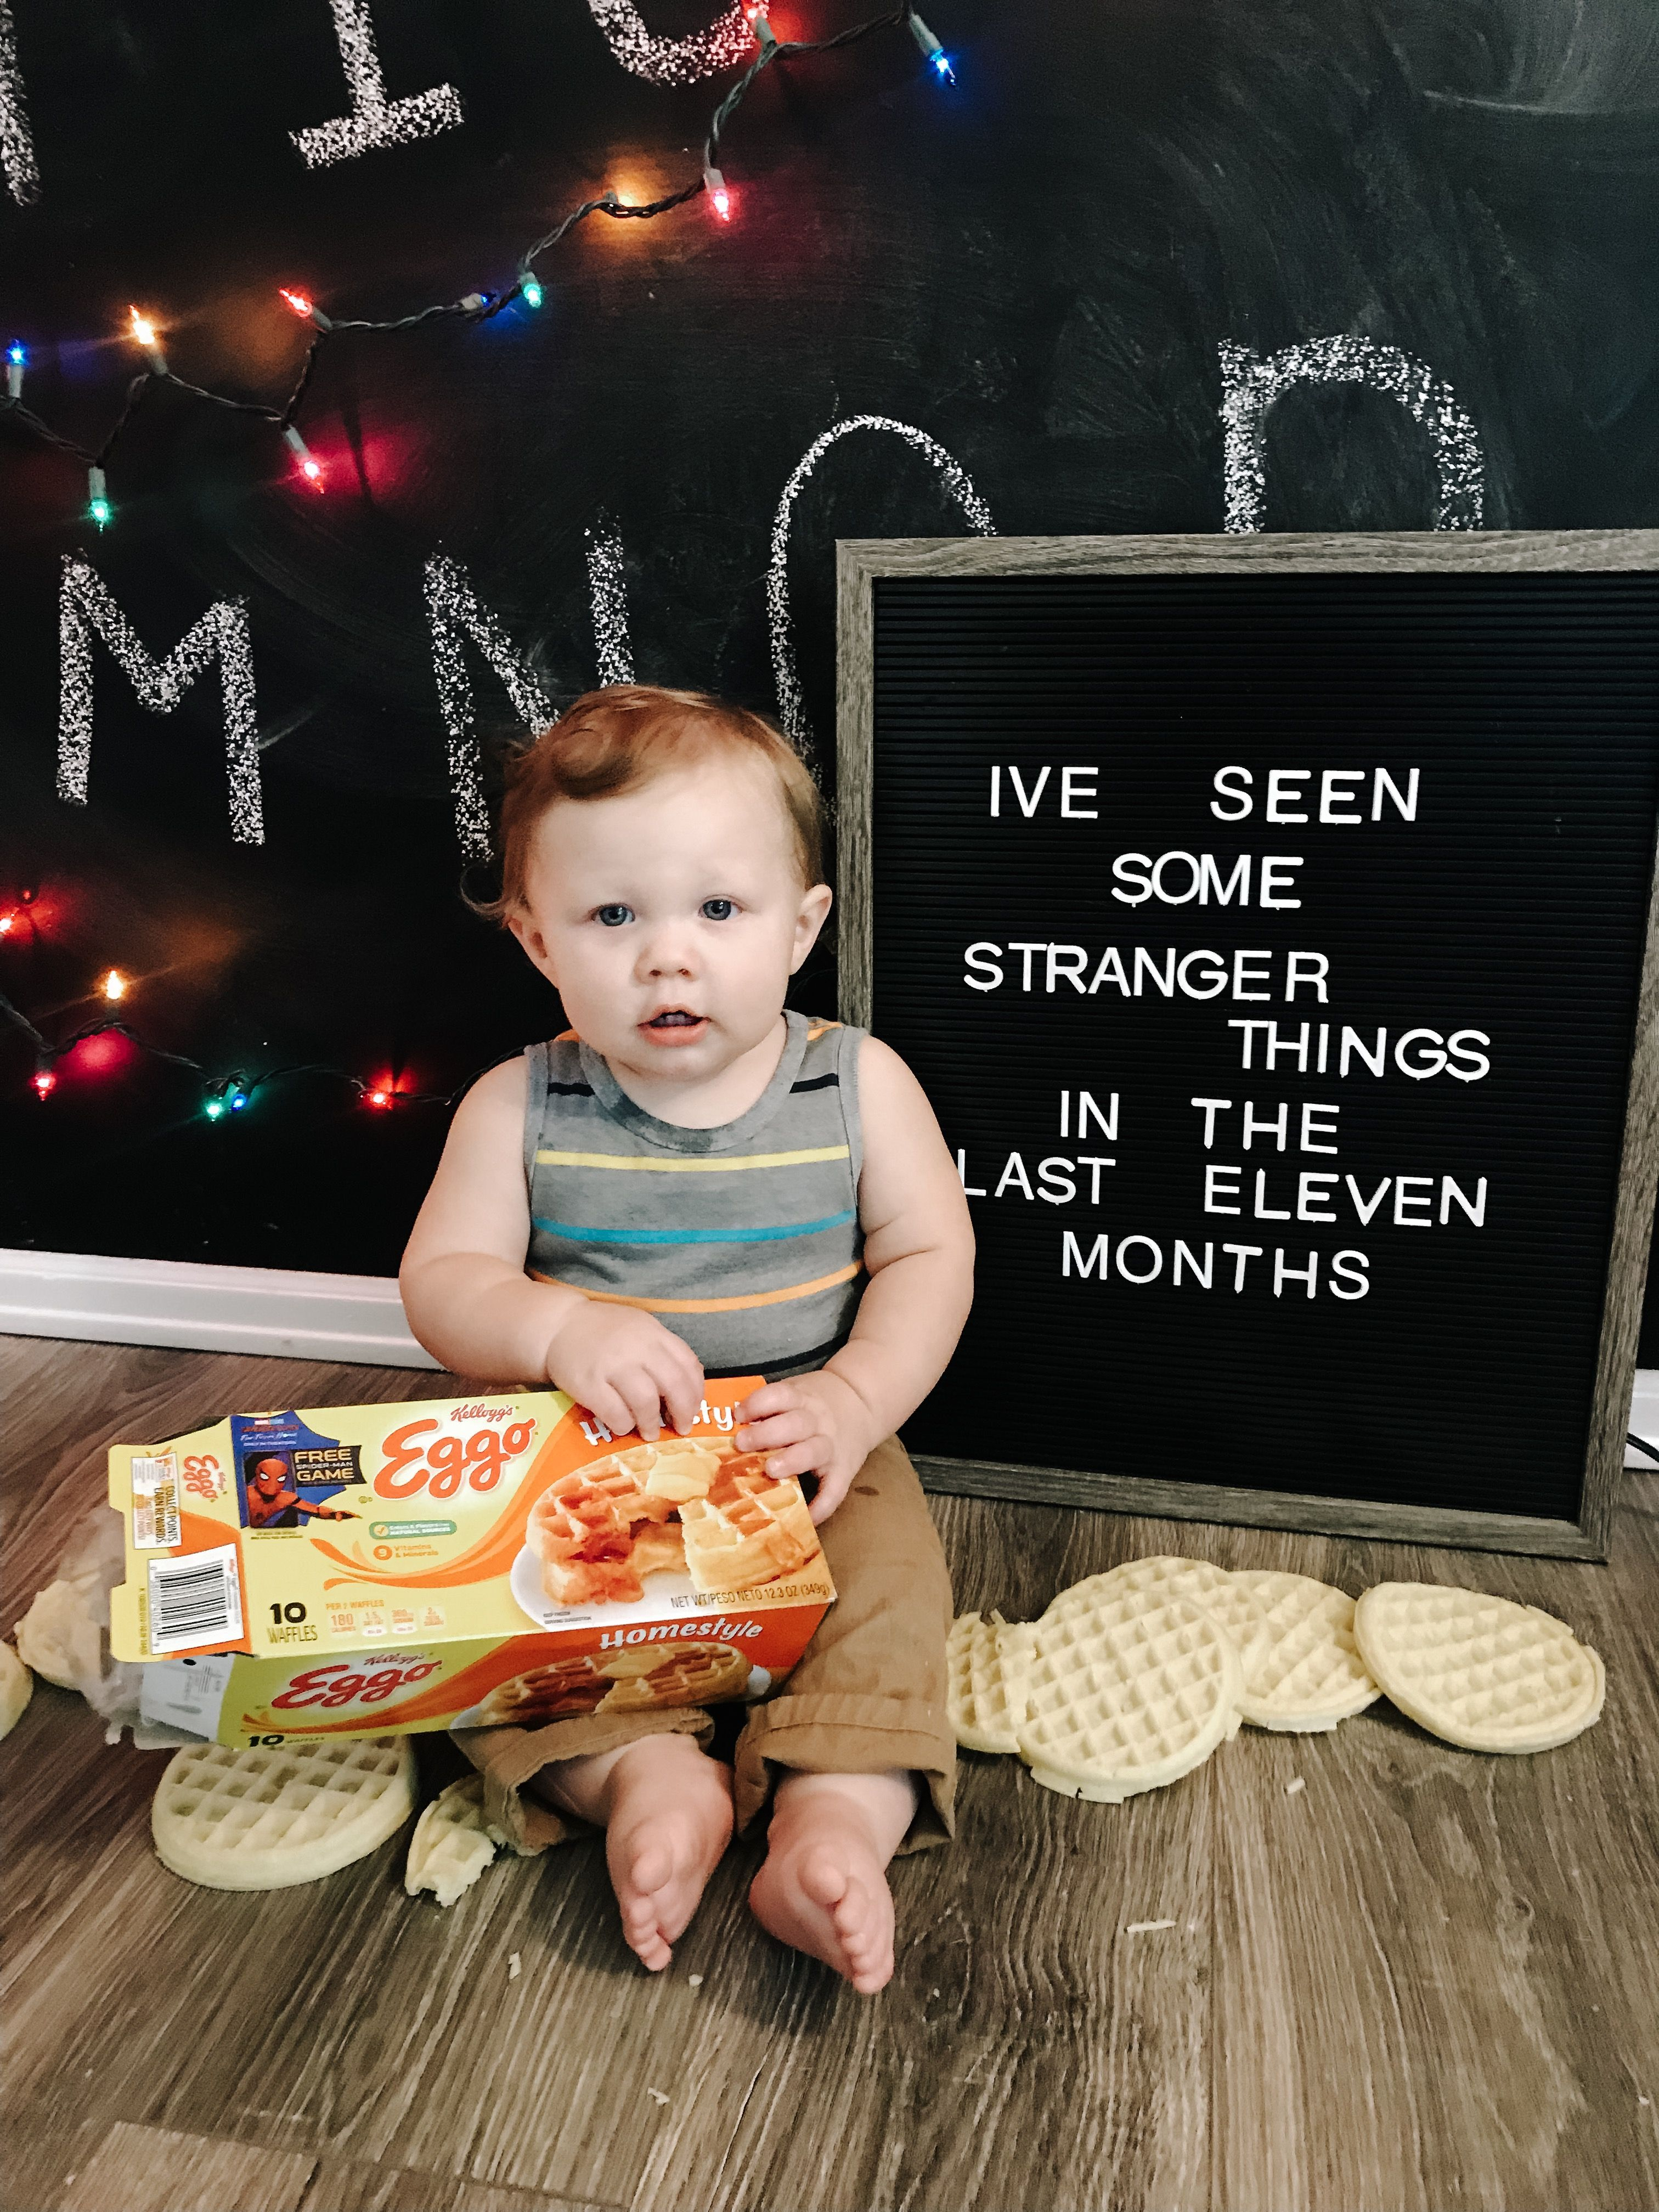 Stranger Things Eleven Months Milestone Letterboard Baby Milestones Pictures Baby Girl Newborn Photos Monthly Baby Photos Girl